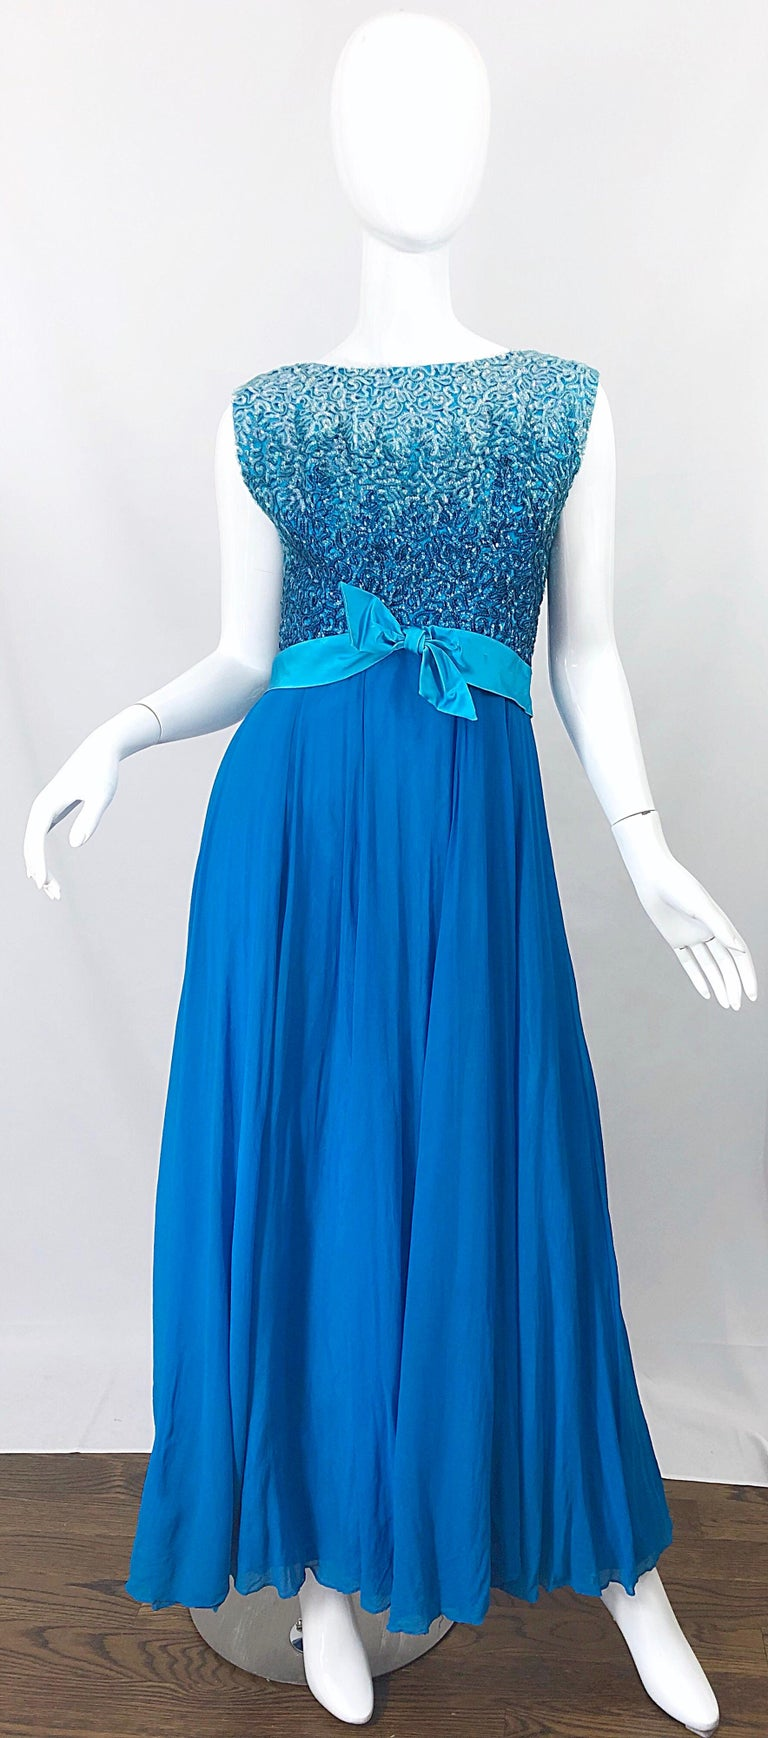 1950s Emma Domb Turquoise Blue Ombre Sequined Silk Chiffon Vintage 50s Gown For Sale 8